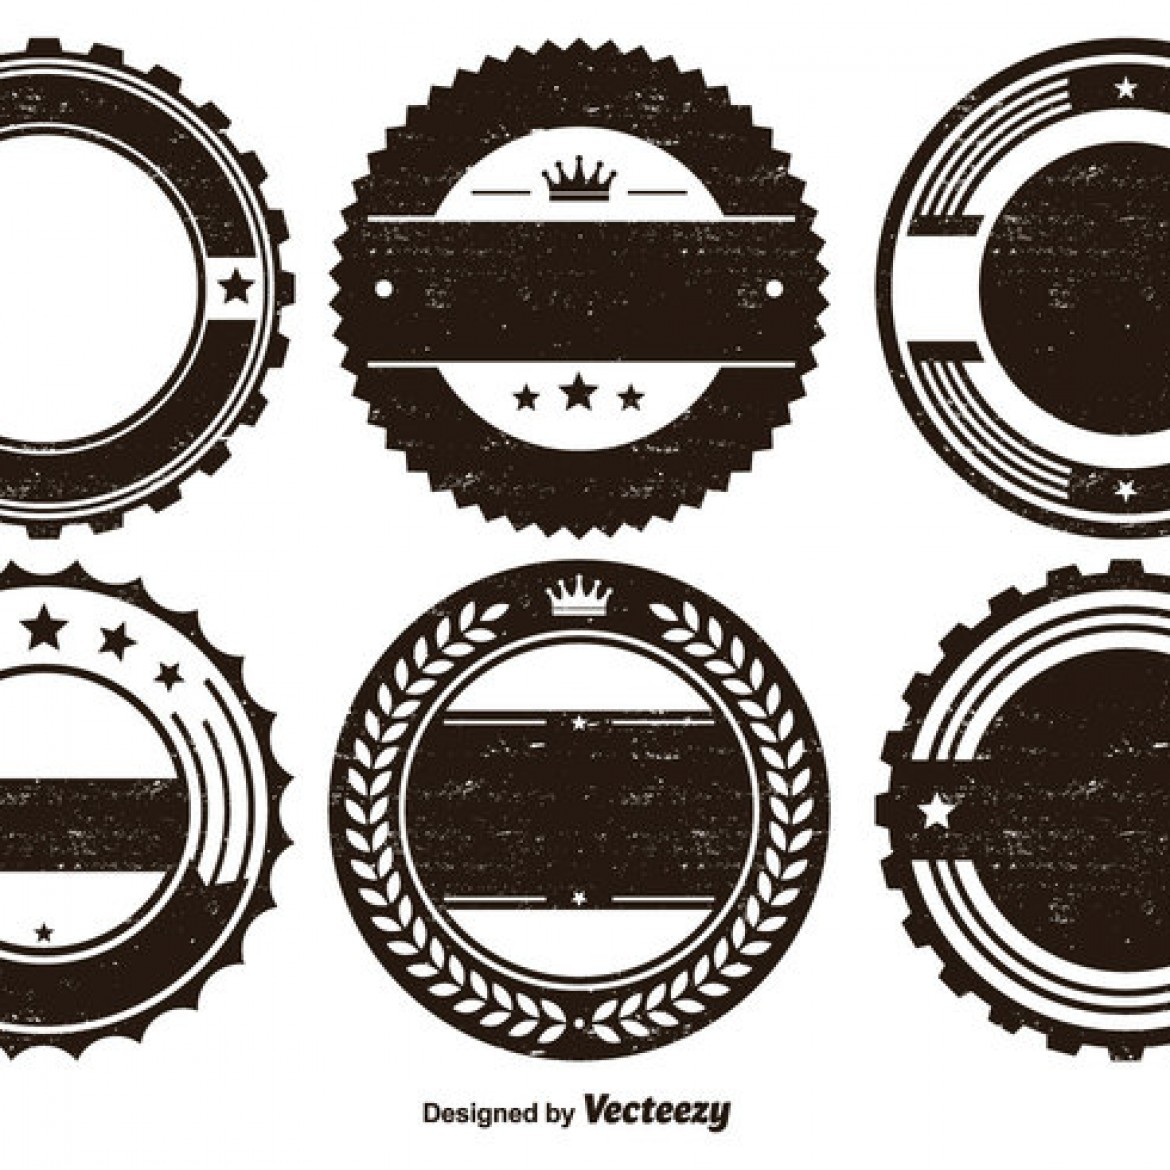 free vector distressed badge shape set 21111 my graphic hunt